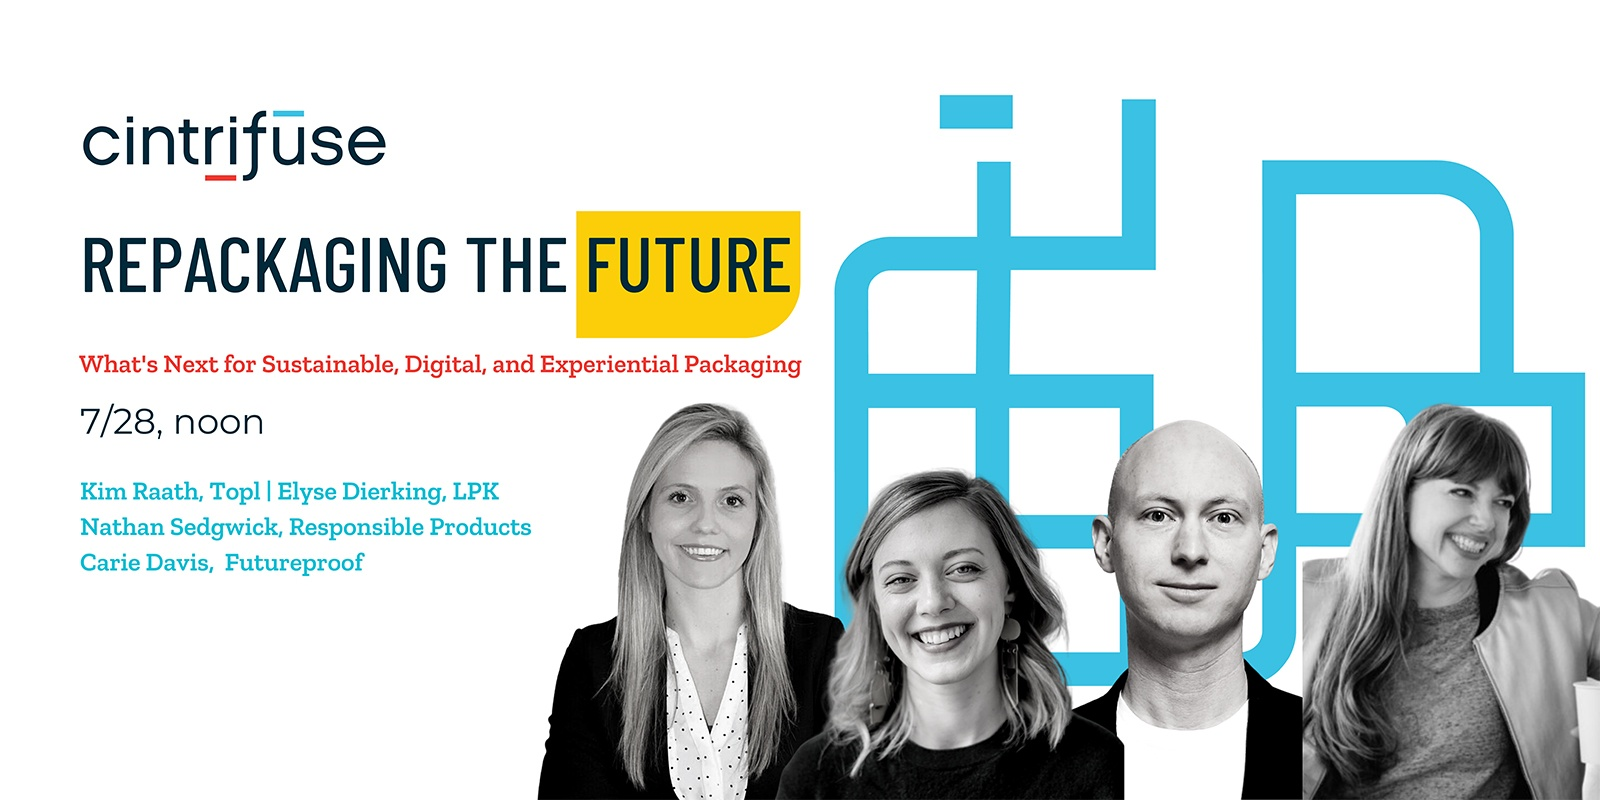 Elyse Dierking Joins Sustainability Experts at <i>Repackaging the Future</i>